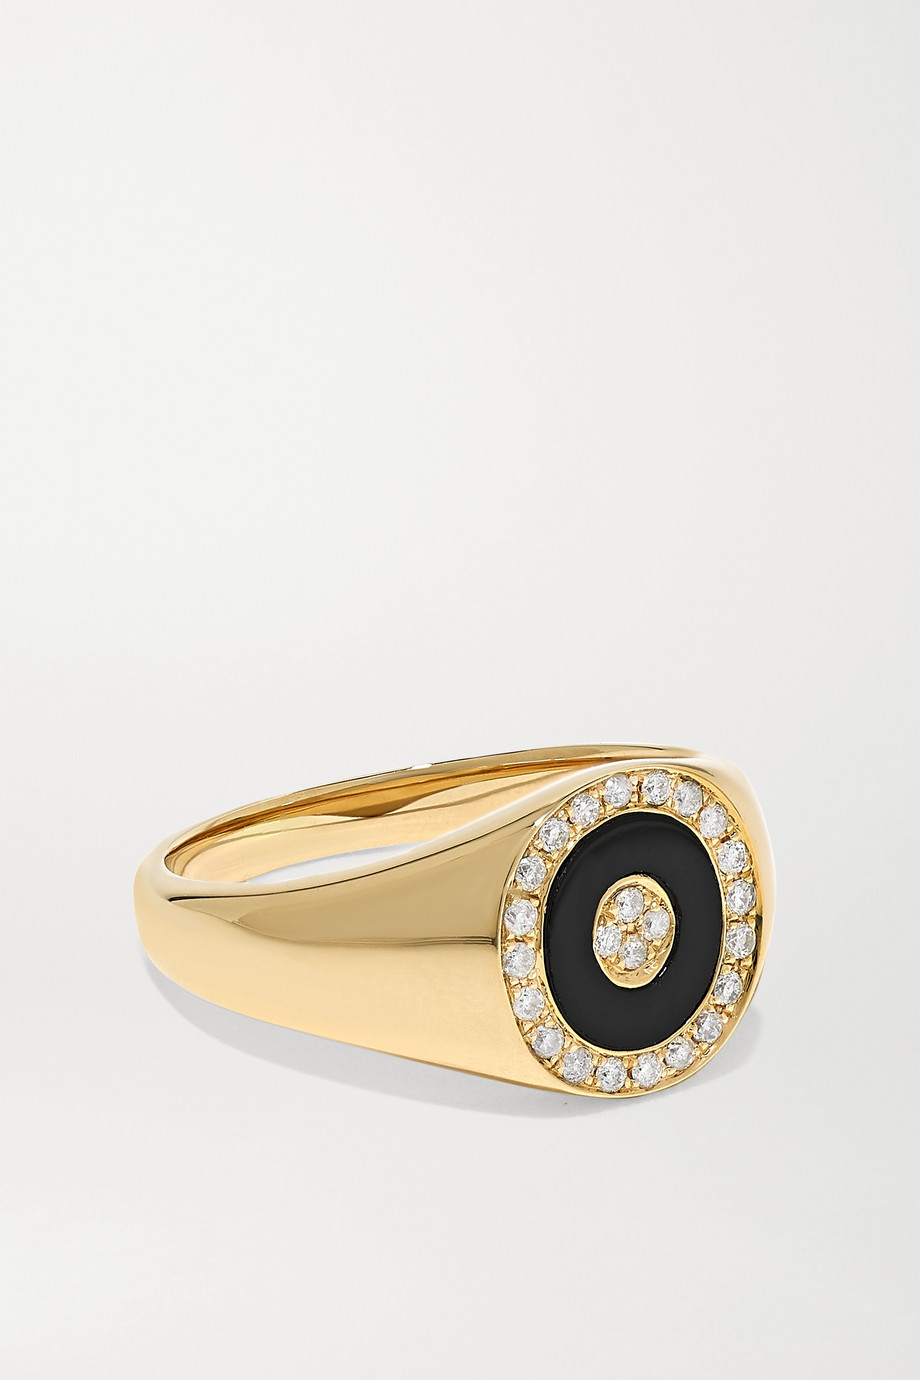 Anissa Kermiche 14-karat gold, onyx and diamond ring